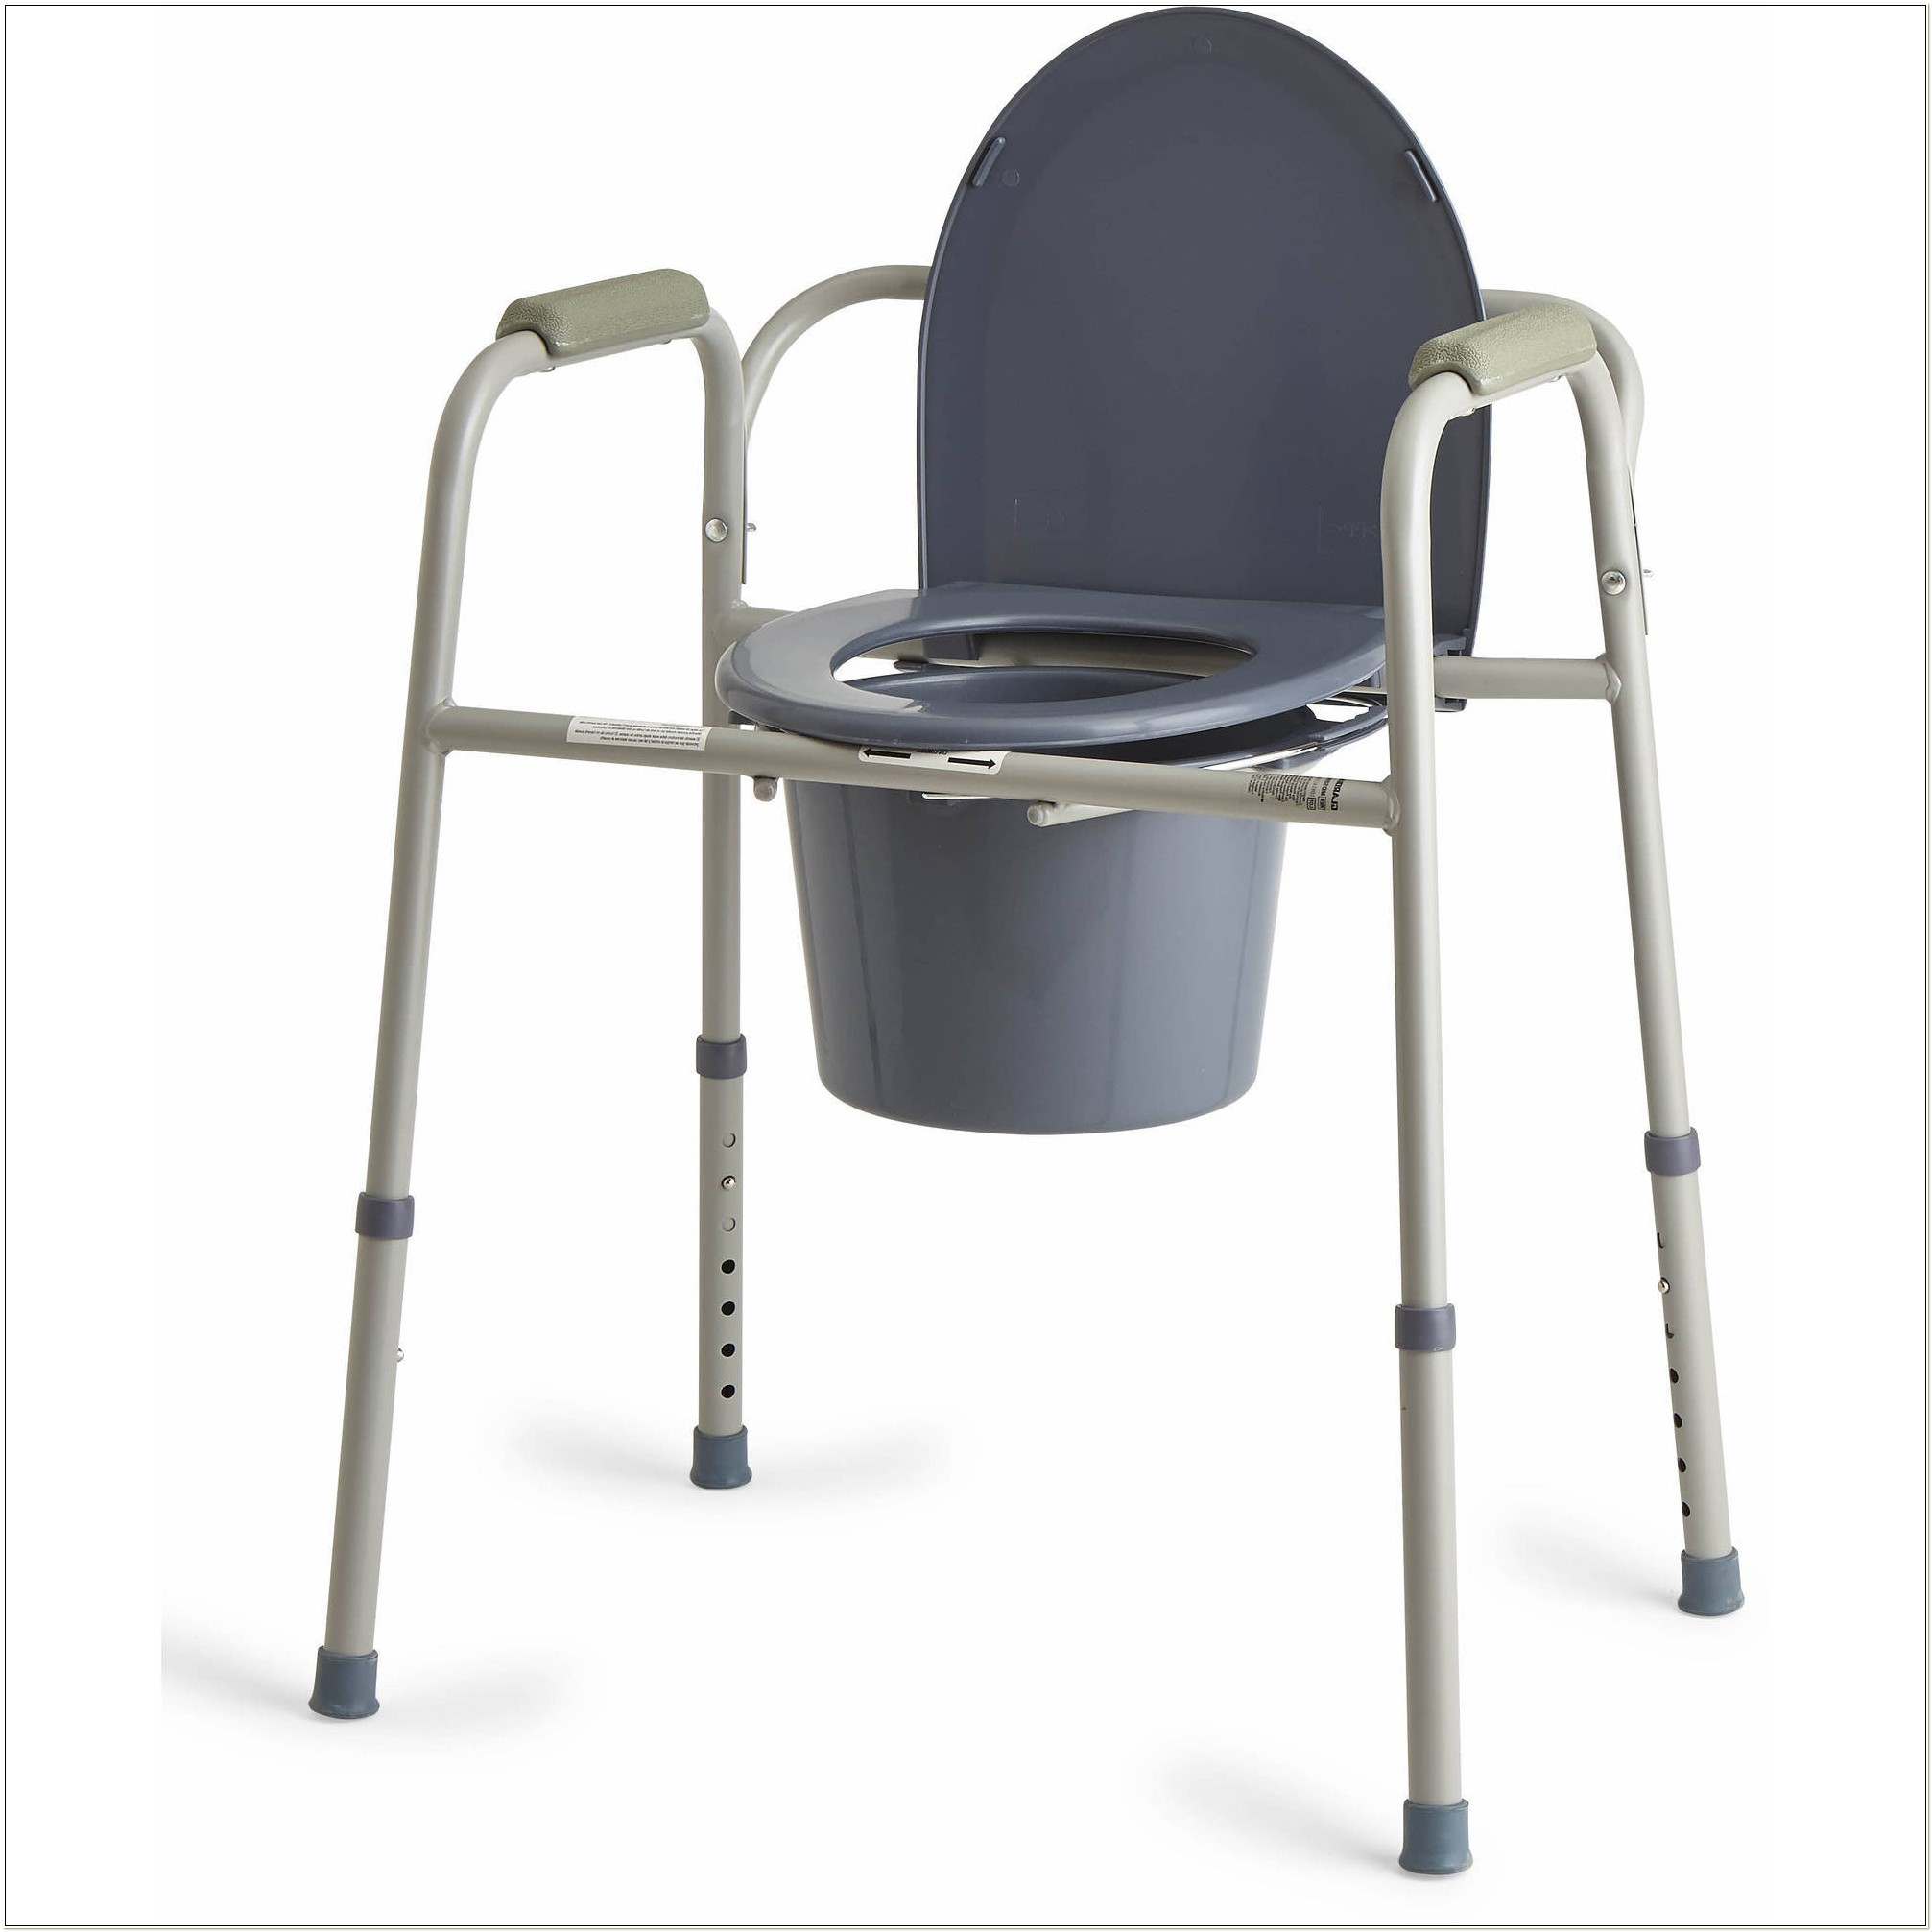 Potty Chair For Adults In Delhi